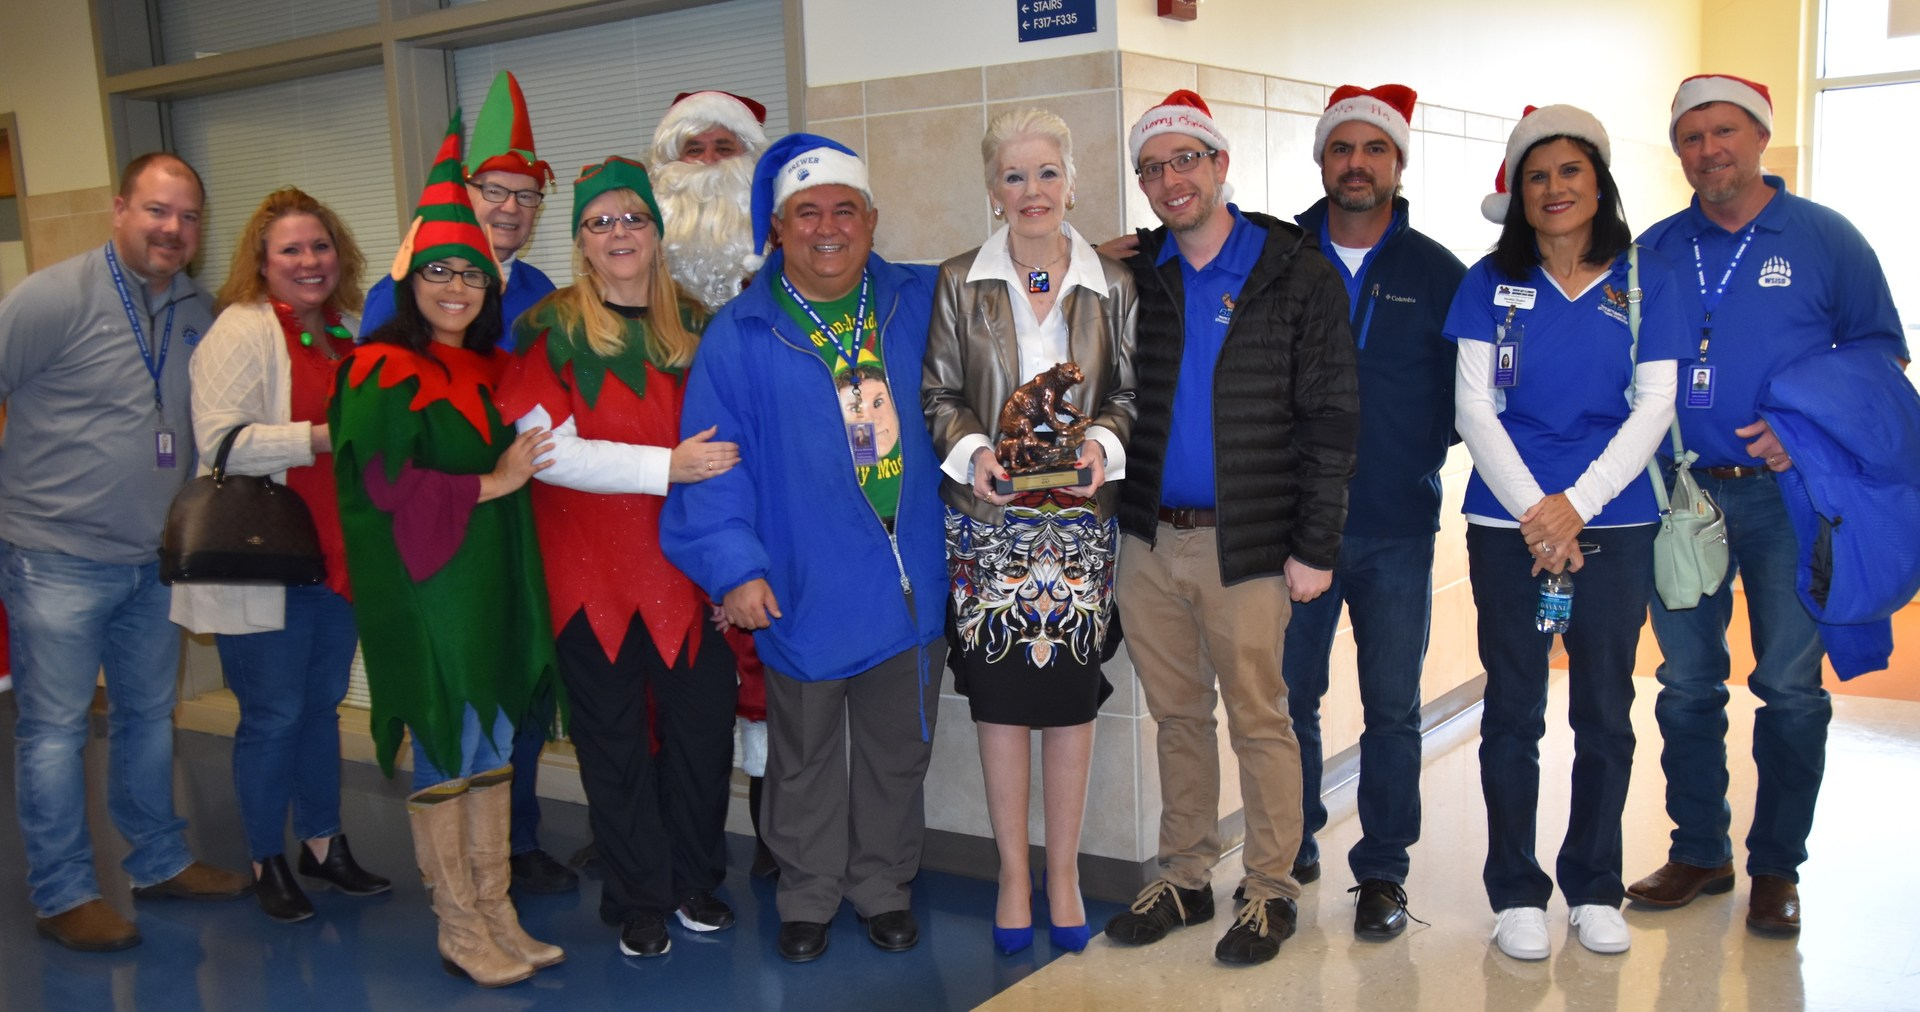 The Foundation recognized AT&T with a Bear Trophy. The company awarded the Foundation with a $25,000 grant that funded STEM grants for Brewer High School educators.